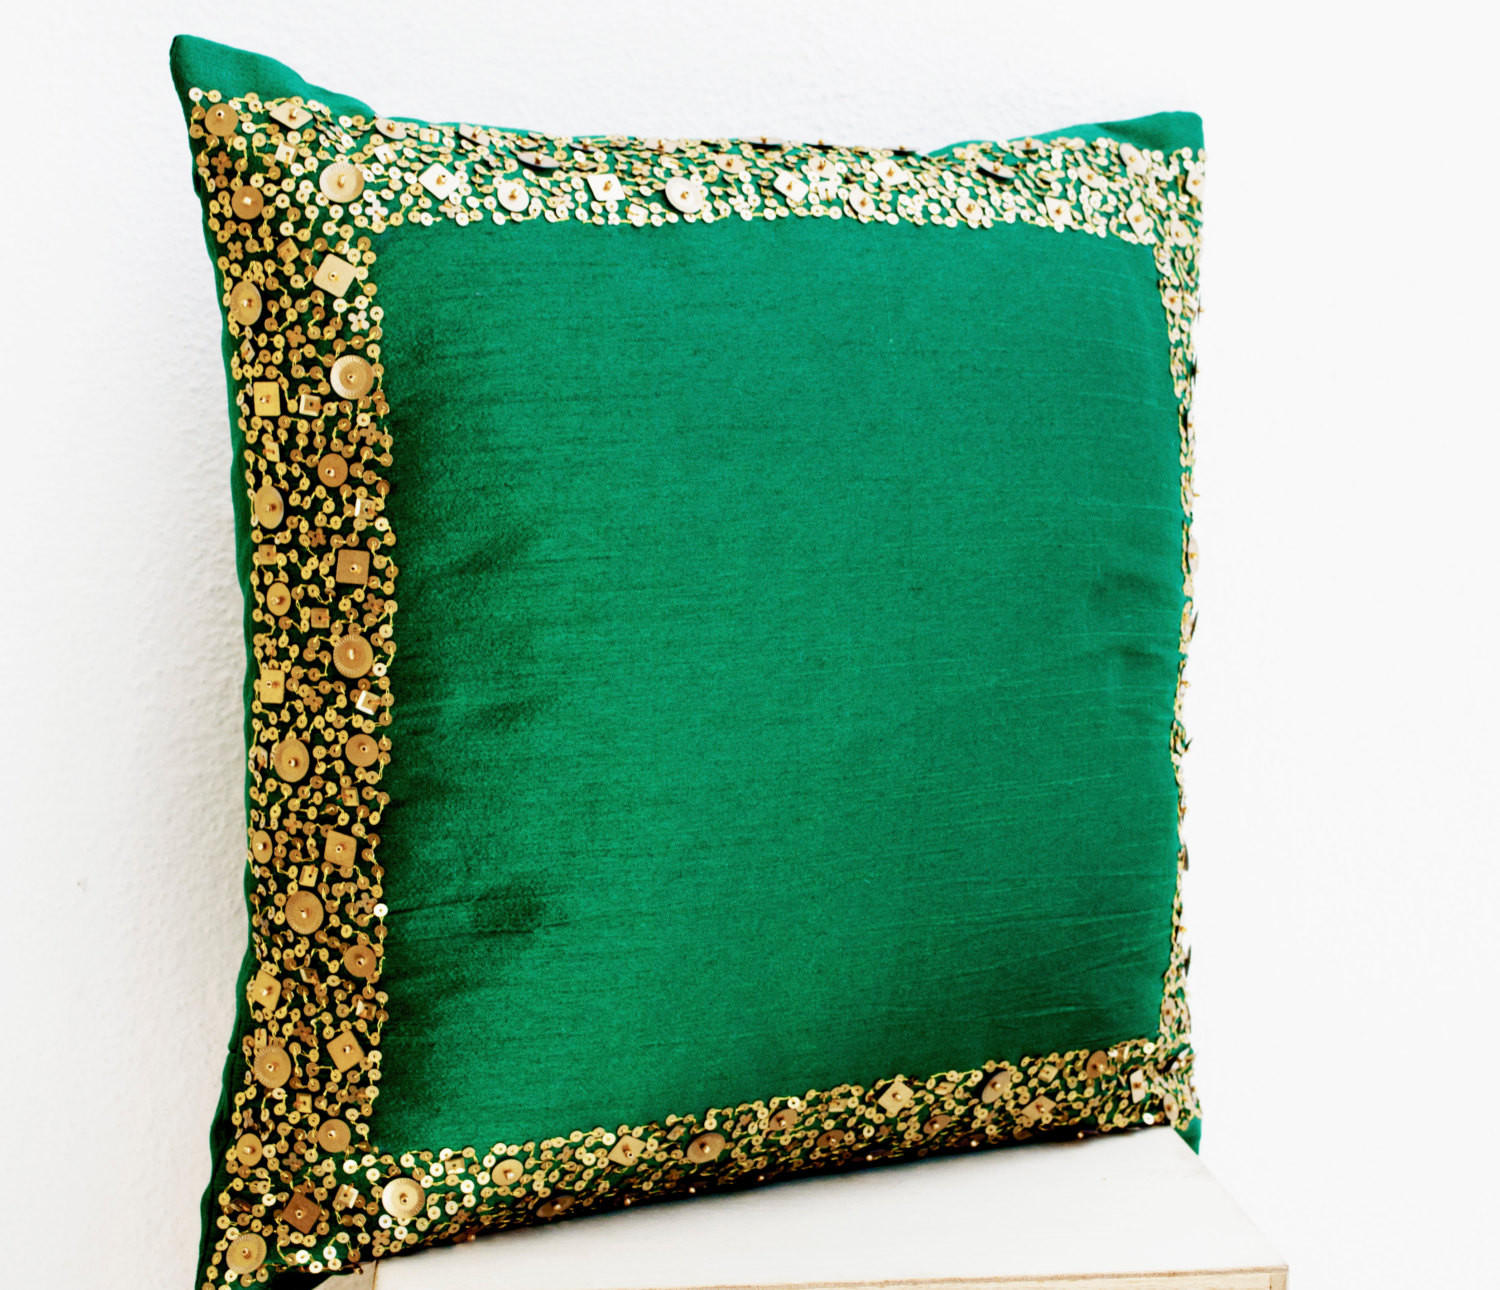 Throw Pillows - Emerald green cushion from casaamore-internationa